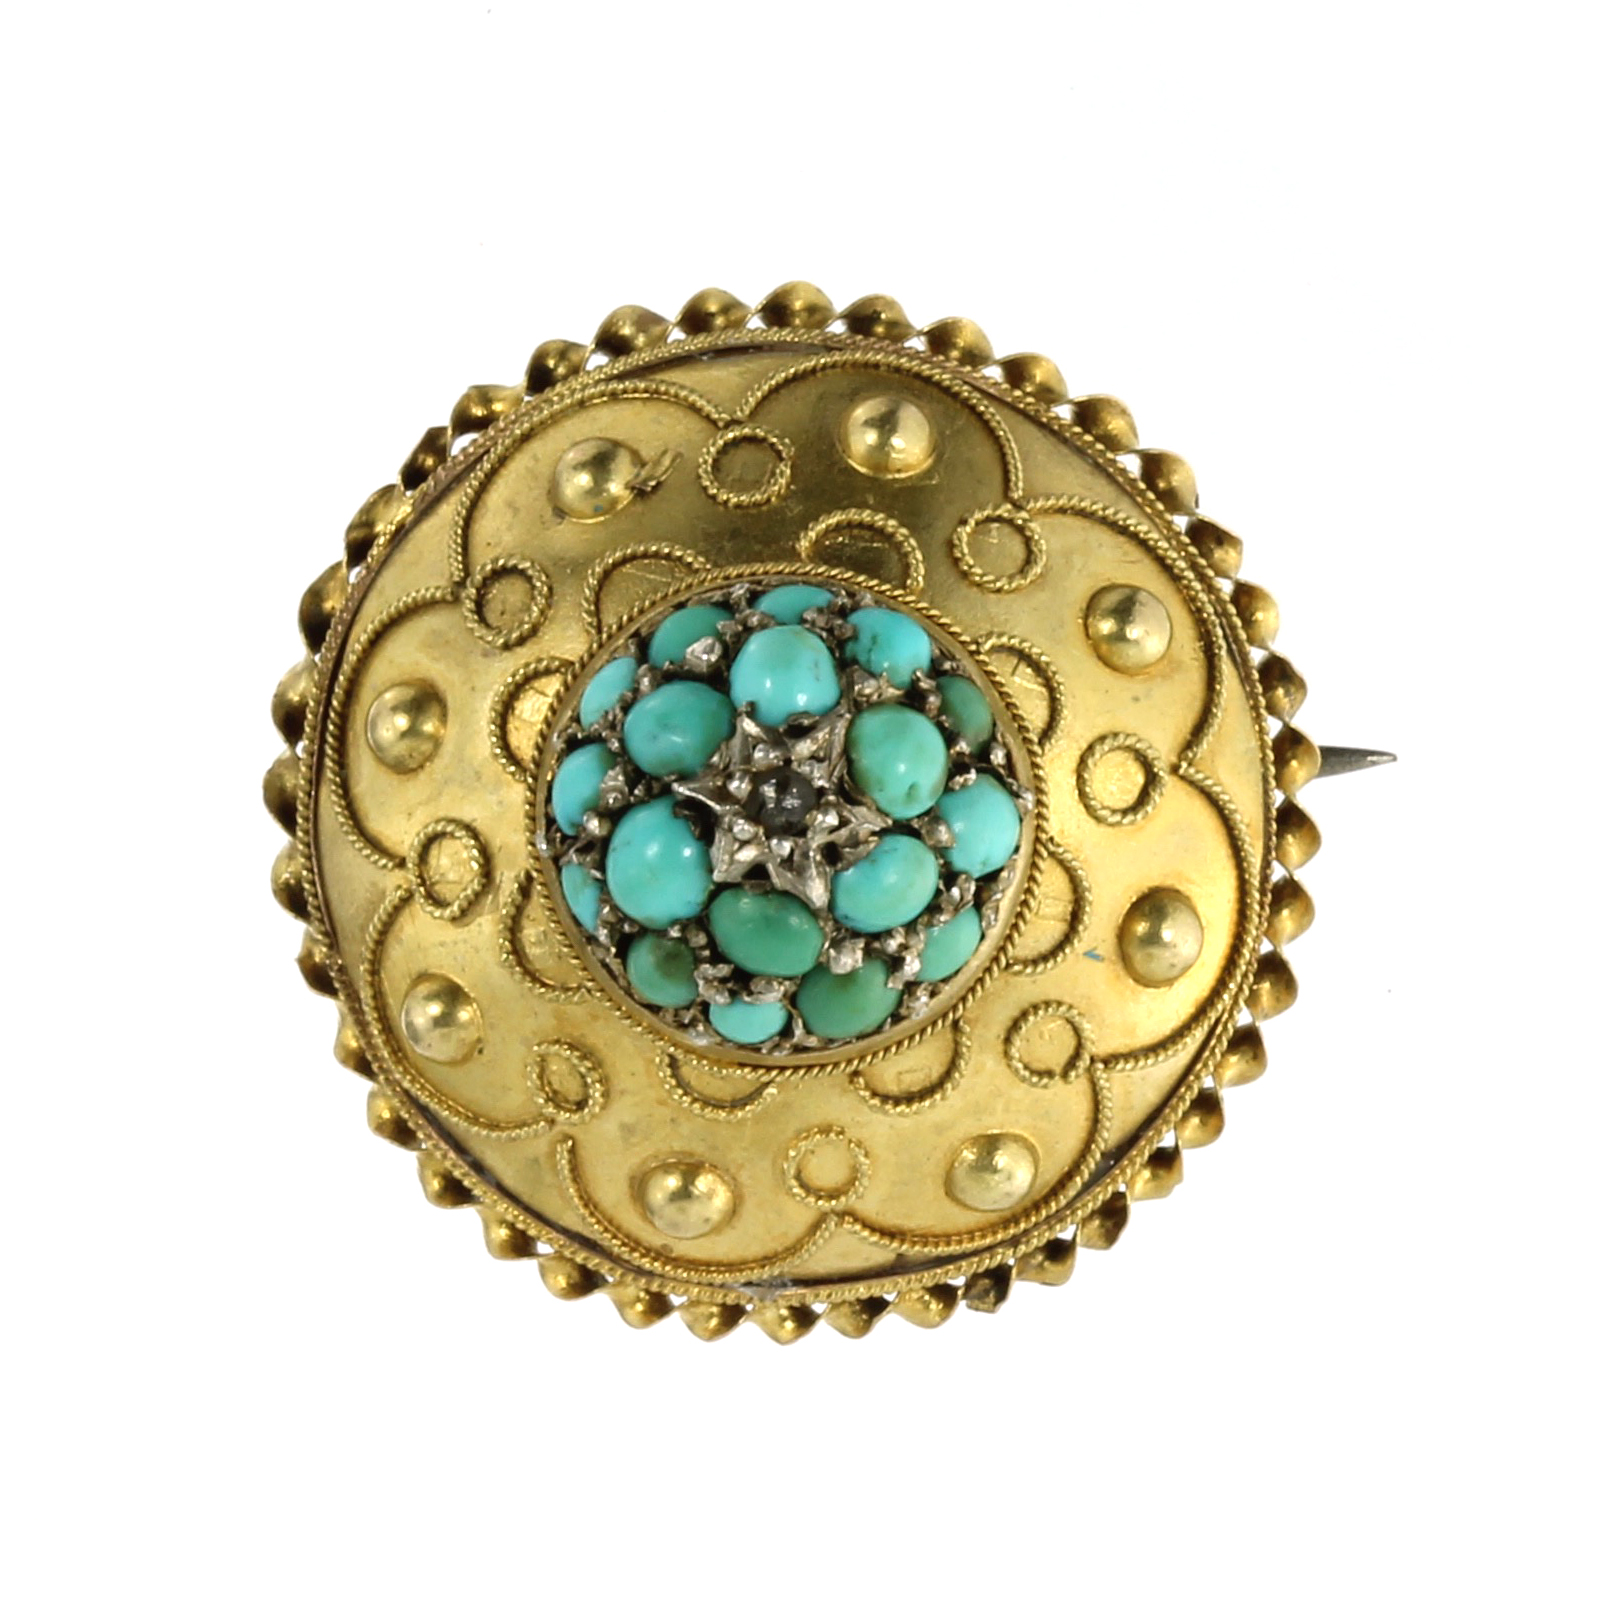 Los 18 - AN ANTIQUE TURQUOISE AND DIAMOND MOURNING BROOCH of circular form, set with a central berry motif